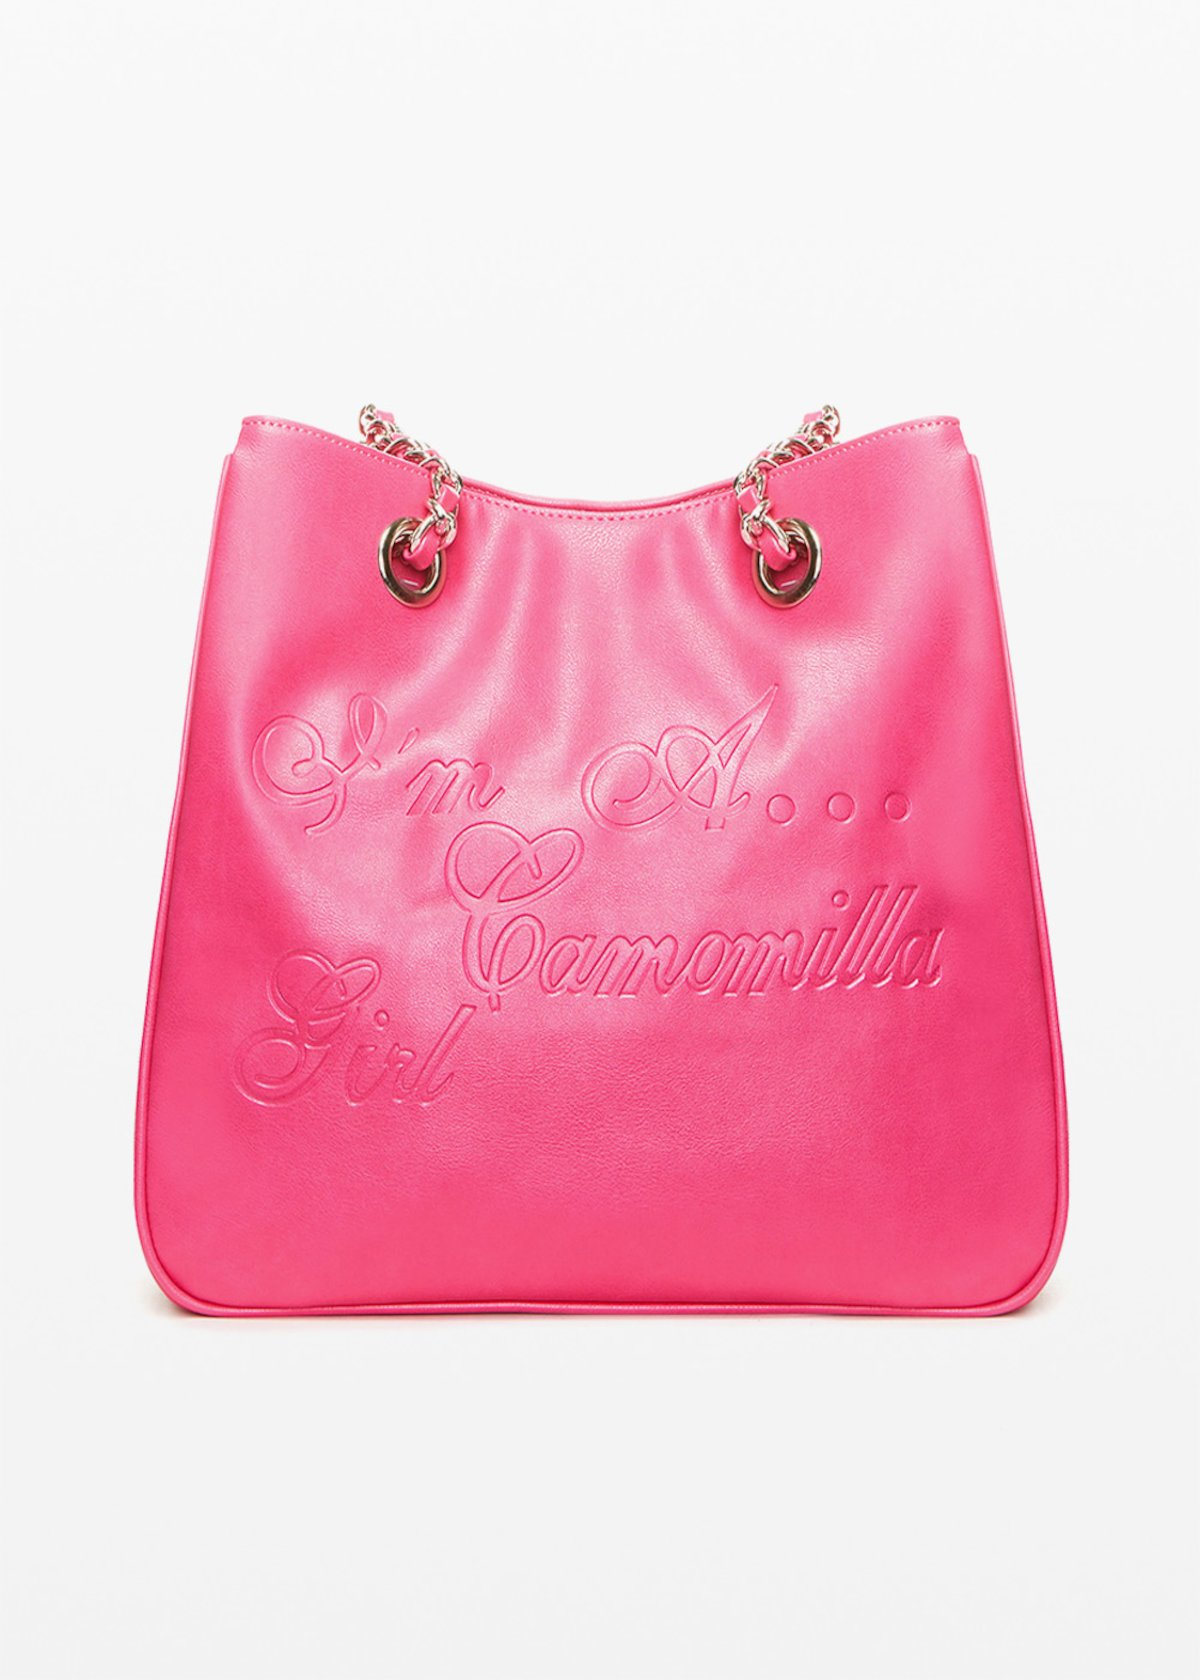 Shopping bag Minicamog in ecopelle con logo embossed - Hibiscus - Donna - Immagine categoria